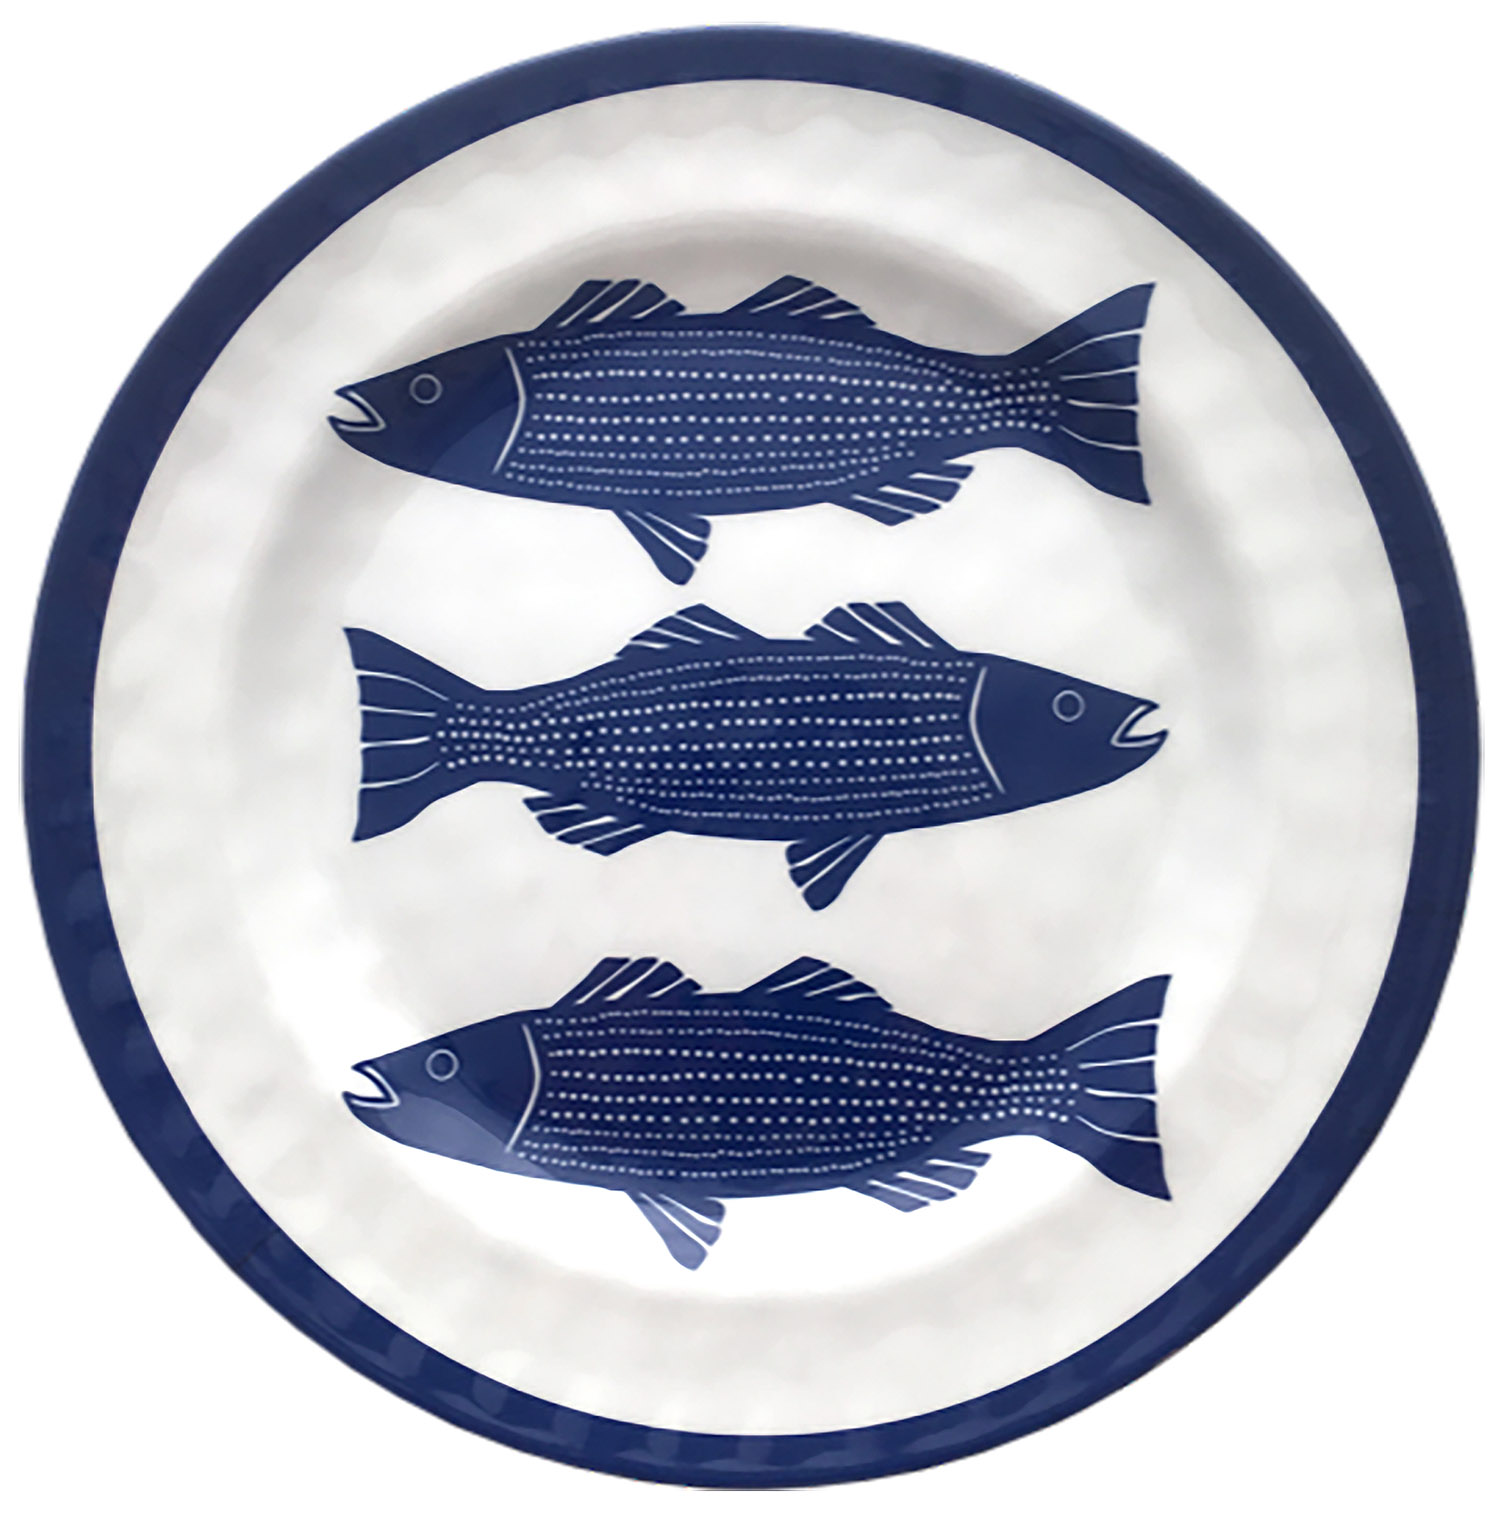 Merritt International tableware